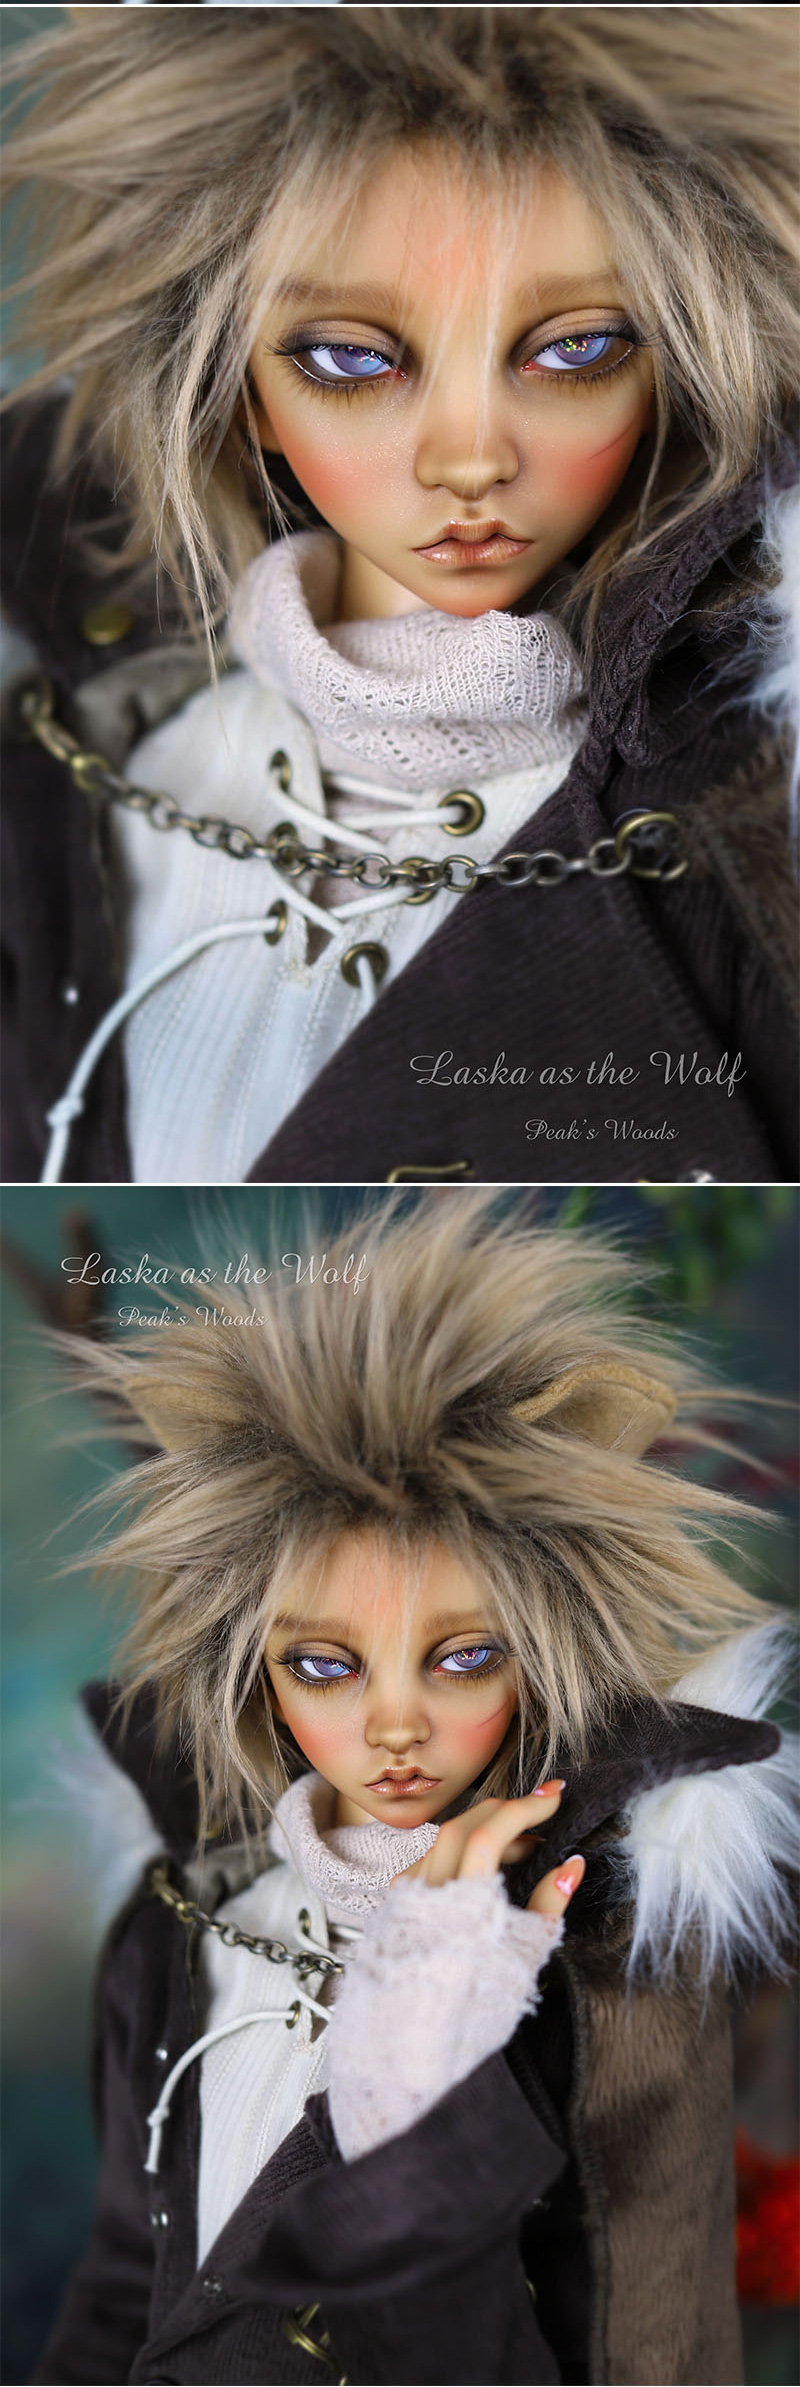 [Pre-Order, Deadline: 2019-12-19] FOC Dandy Laska as the Wolf_